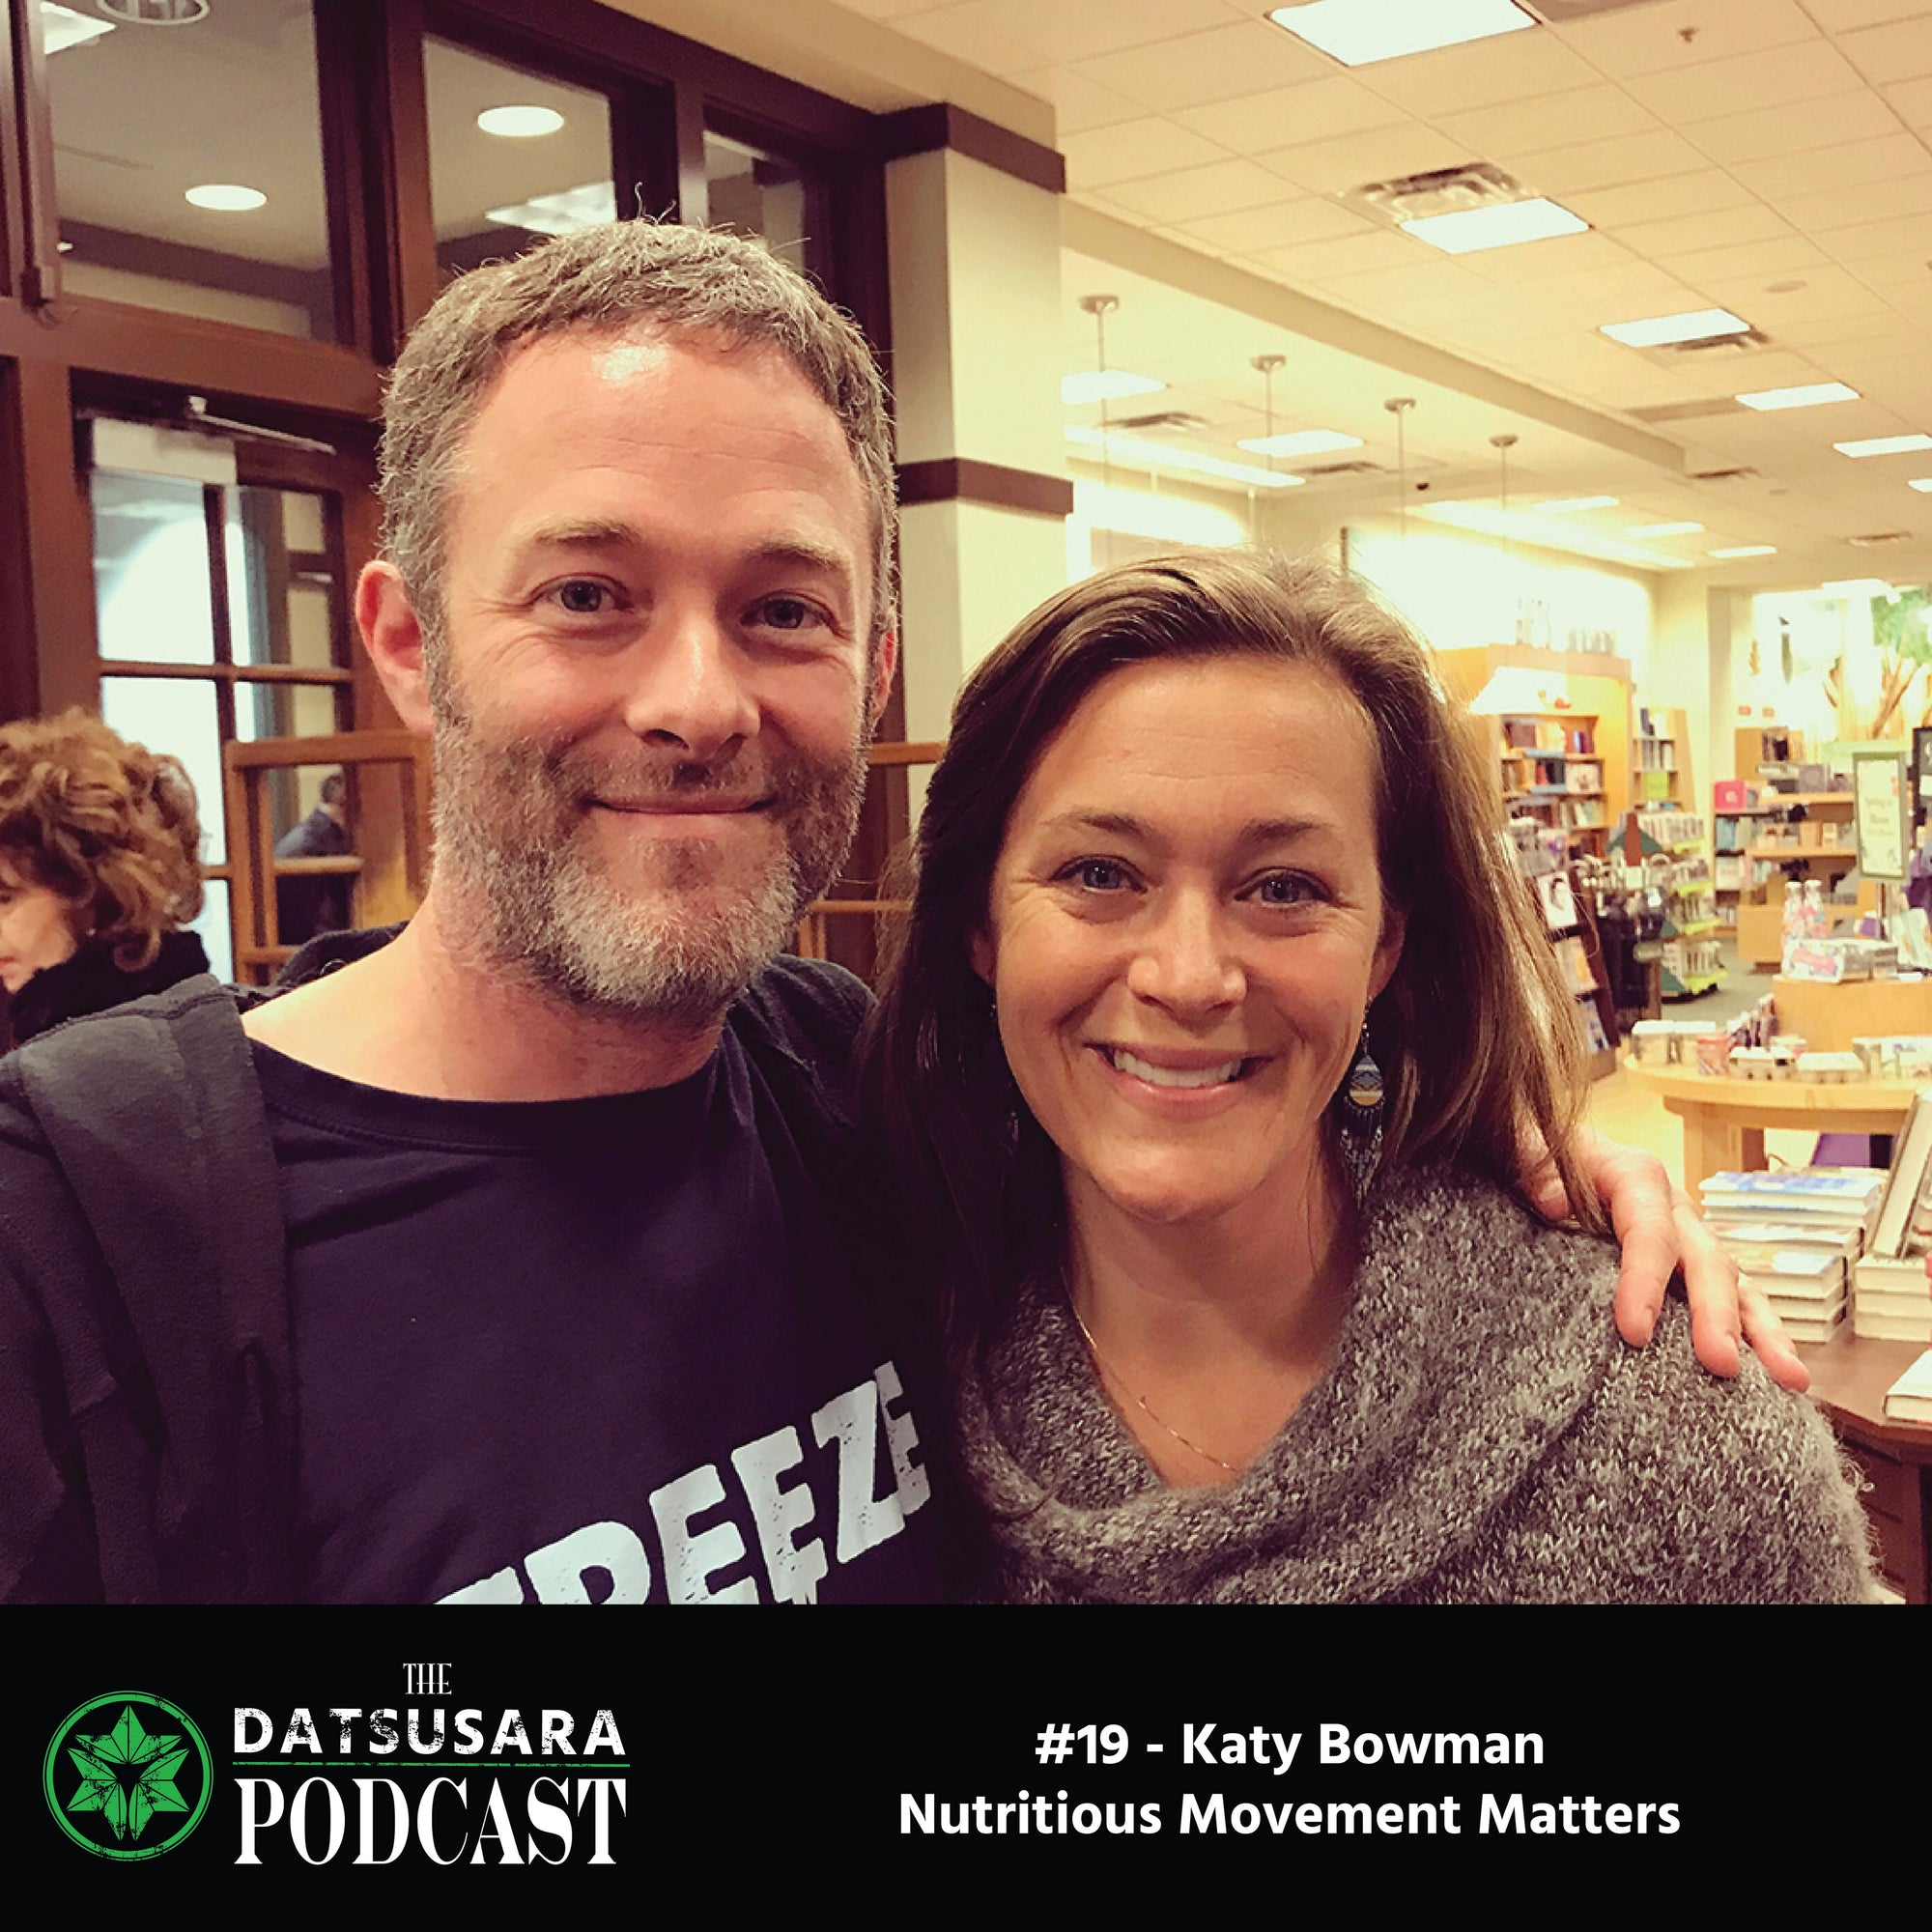 #19 - Katy Bowman - Nutritious Movement Matters